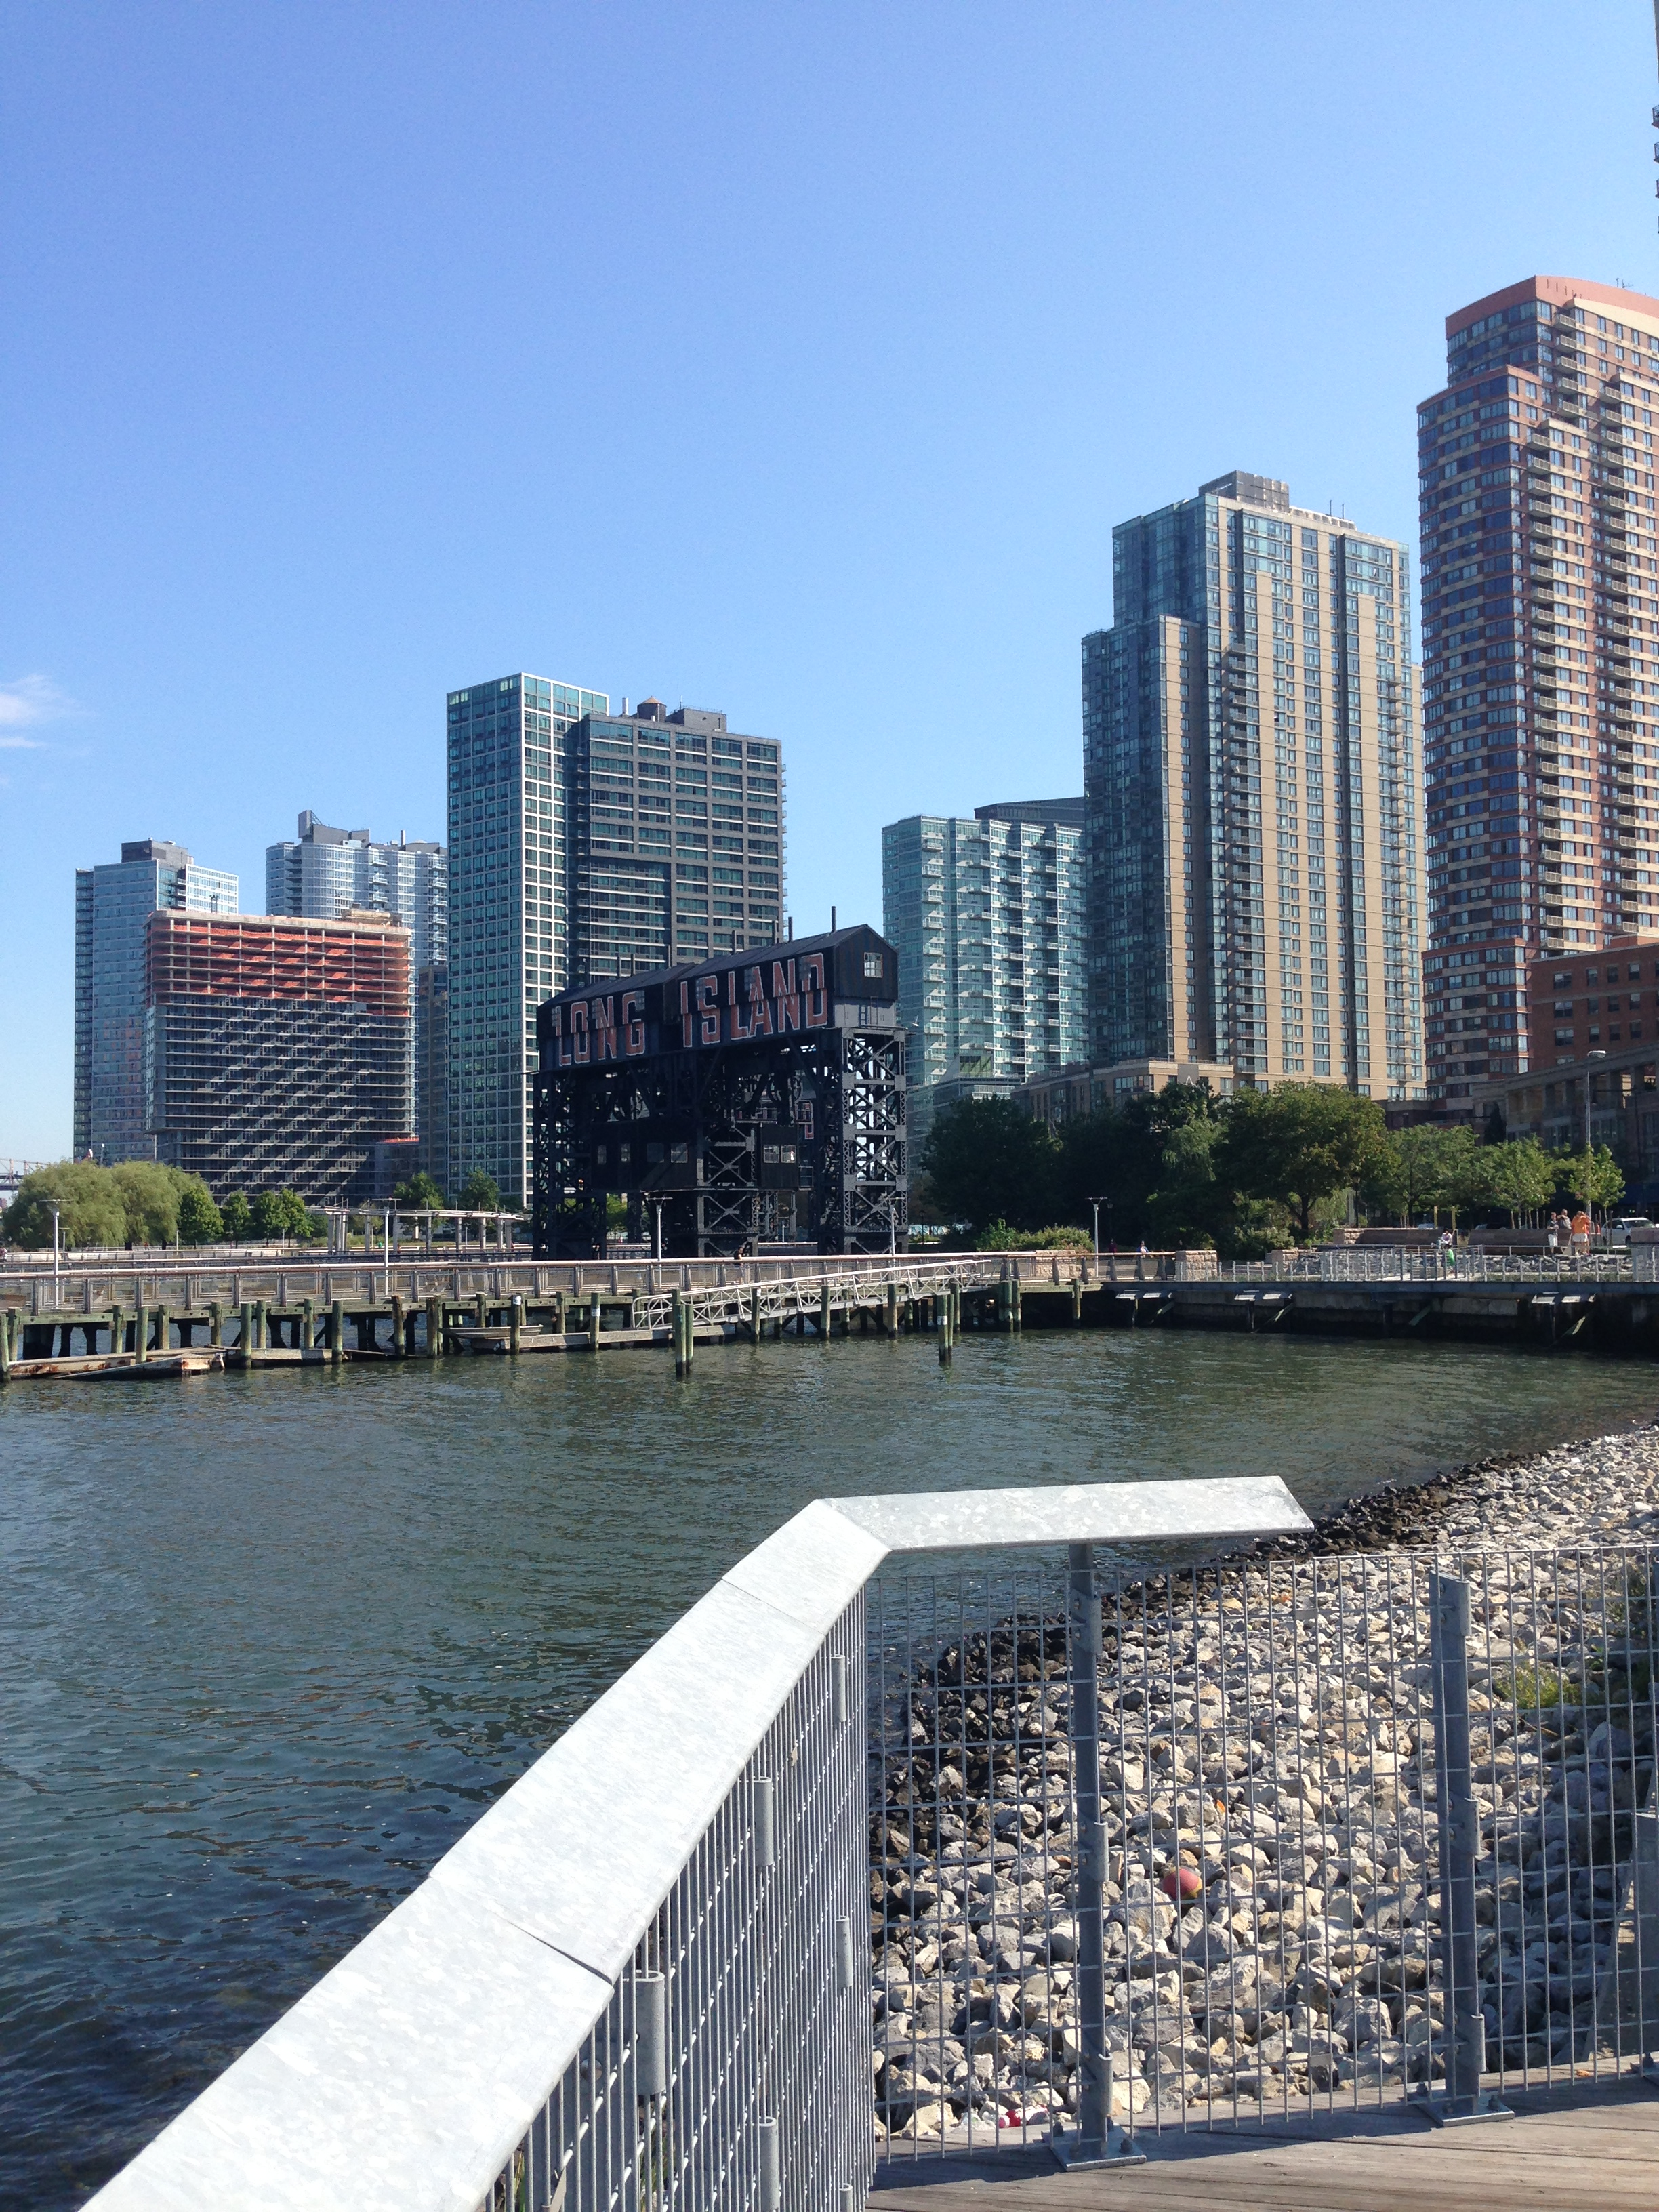 Long Island City - The perfect place to view the New York skyline